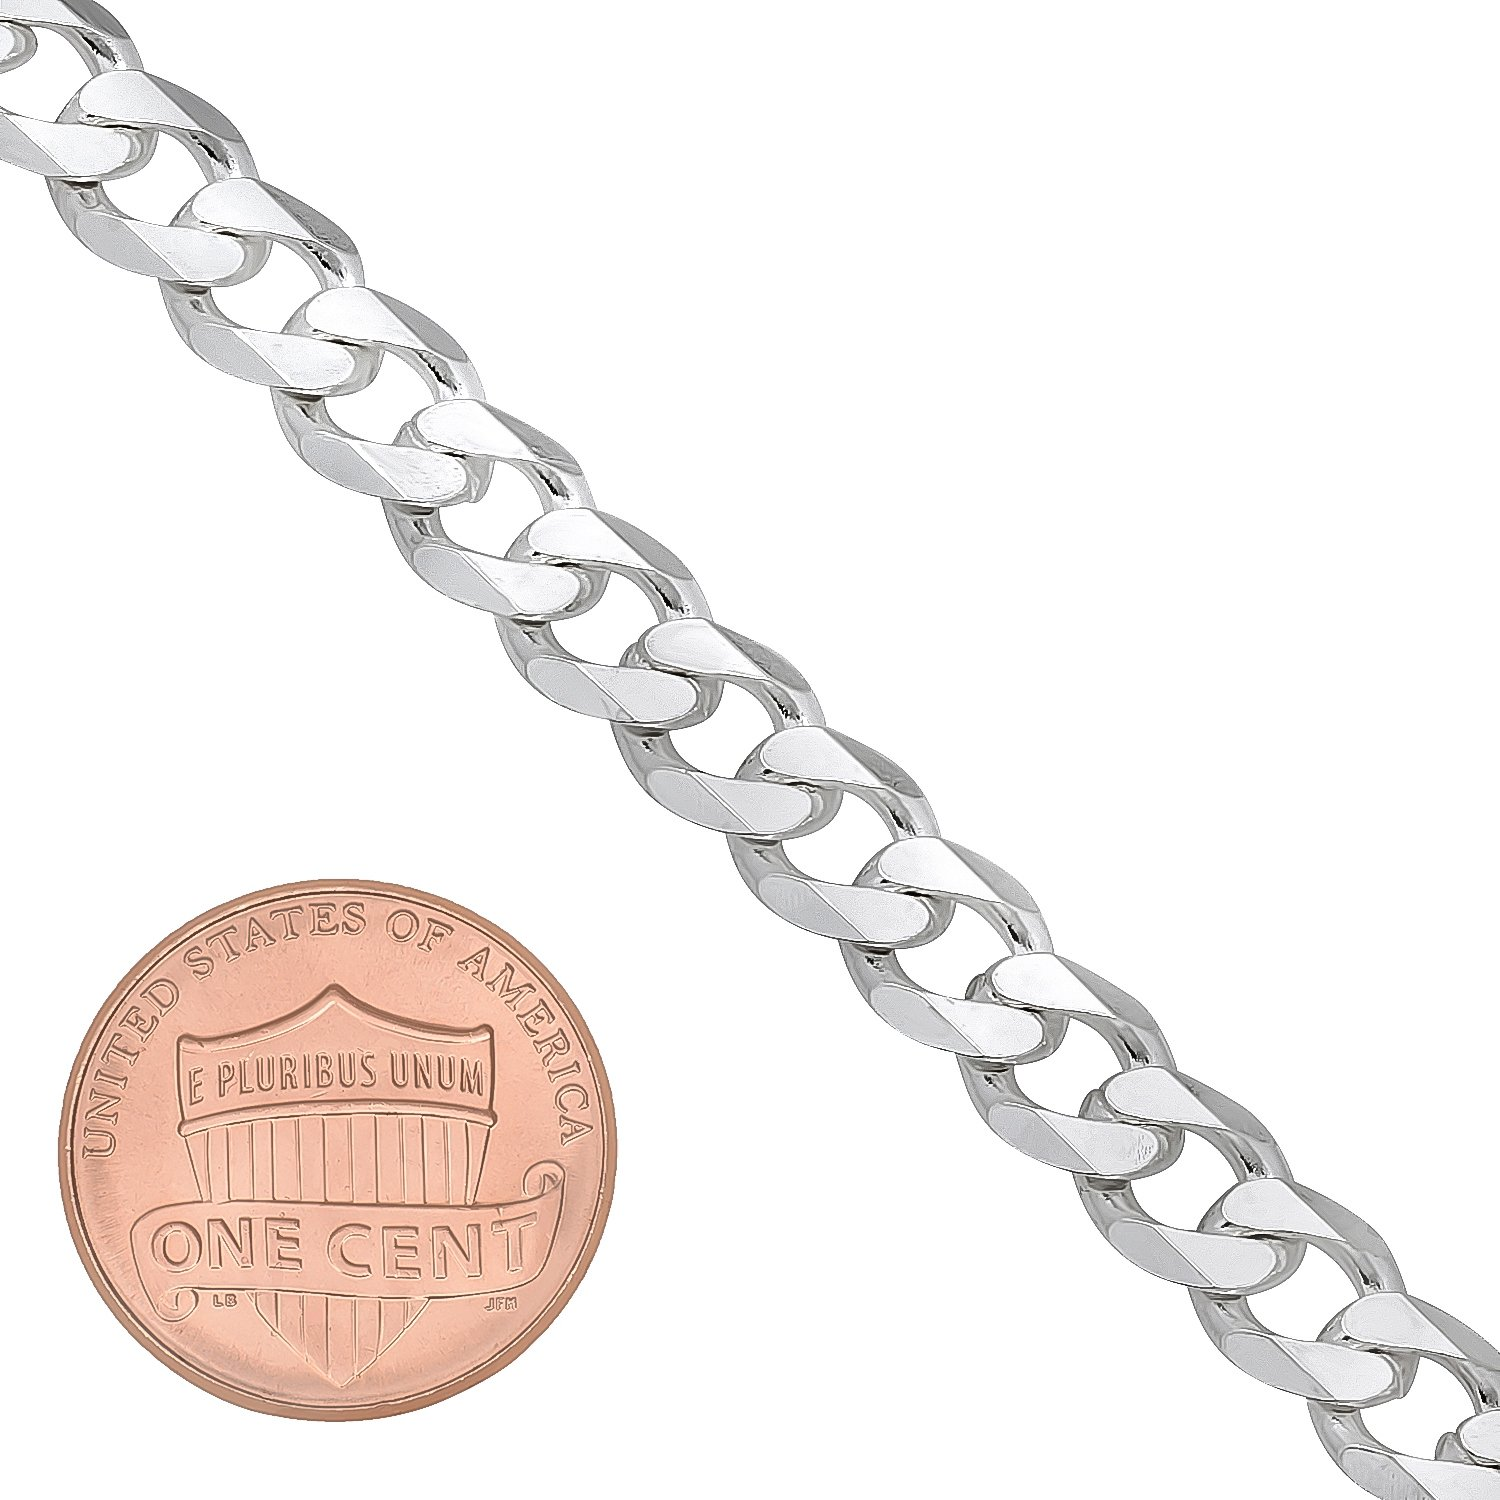 Italian 6.5mm 925 Sterling Silver Nickel-Free Beveled Cuban Curb Link Bracelet, 7'' + Cleaning Cloth by The Bling Factory (Image #3)